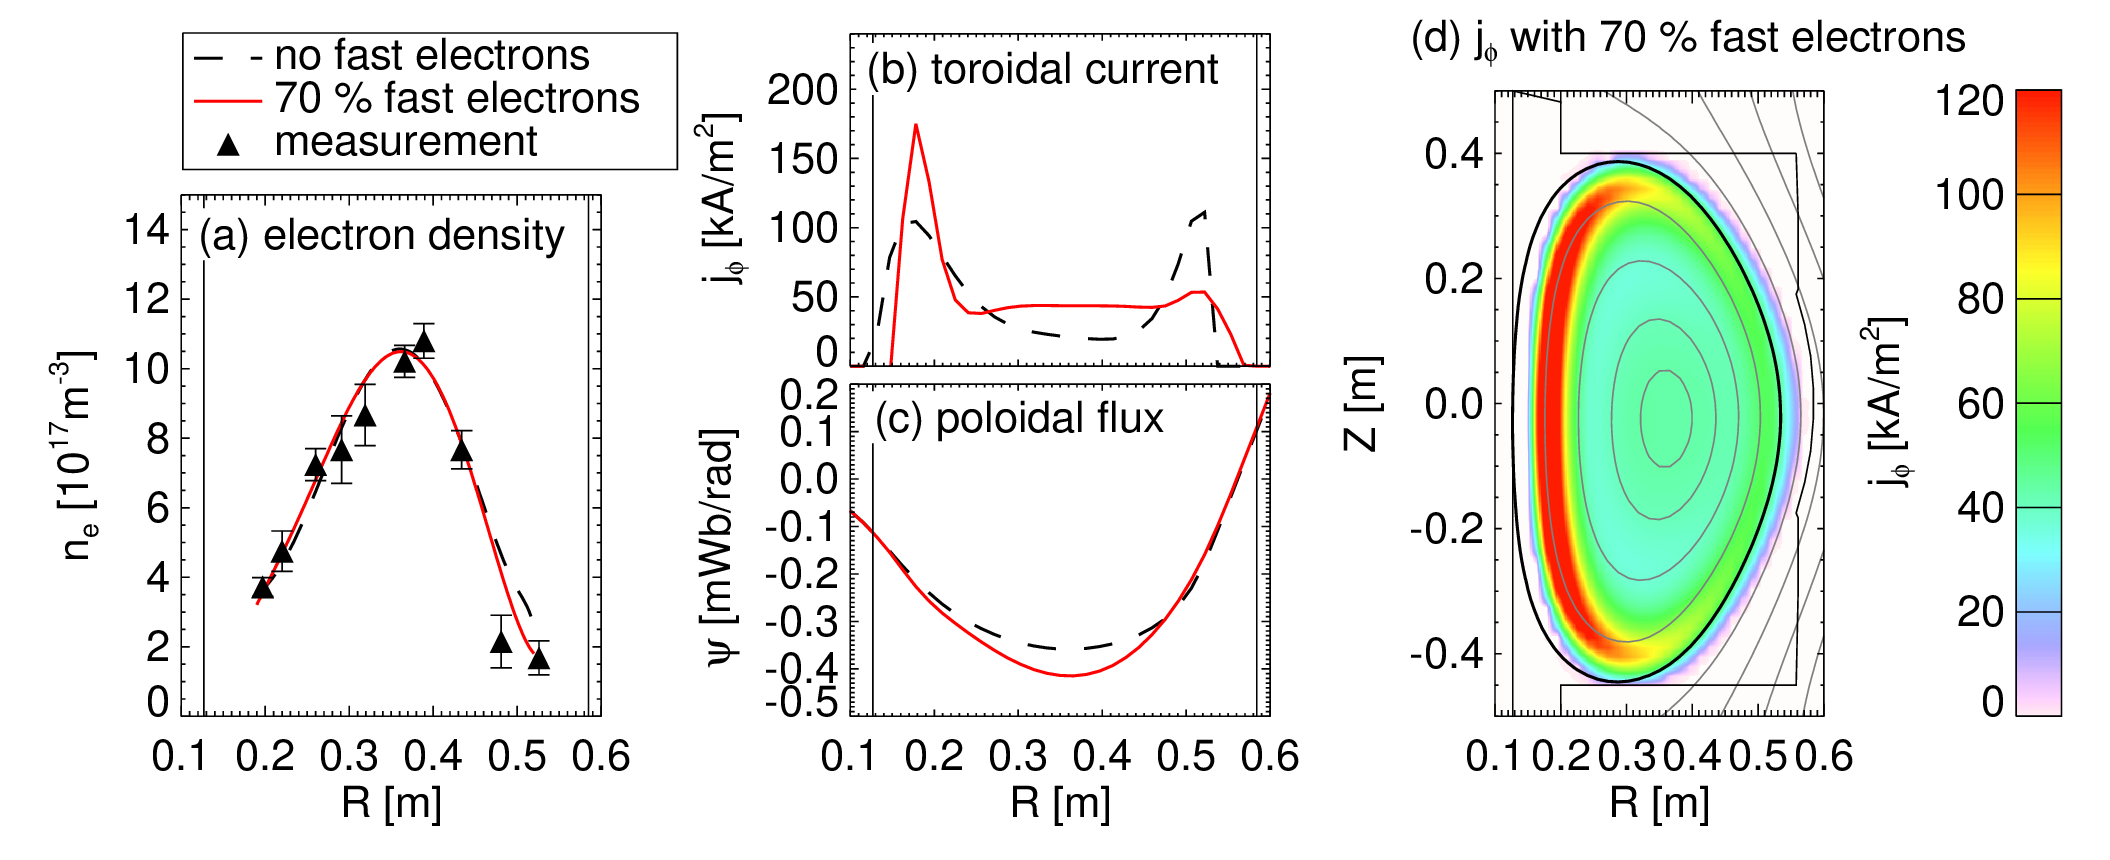 (a) The density profile fit using the poloidal flux of the conventional equilibrium reconstruction (black dashed curve) and that of the extended MHD model with 70 % of the plasma current carried by the fast electrons (red solid curve). The measured values are shown with triangles. Fitting improved with extended MHD. (b) The toroidal current and (c) the poloidal flux of the corresponding solutions. (d) The flux surfaces and the toroidal current density of the extended MHD model. The current flows outside of the last-closed-flux-surface (thick black solid curve).